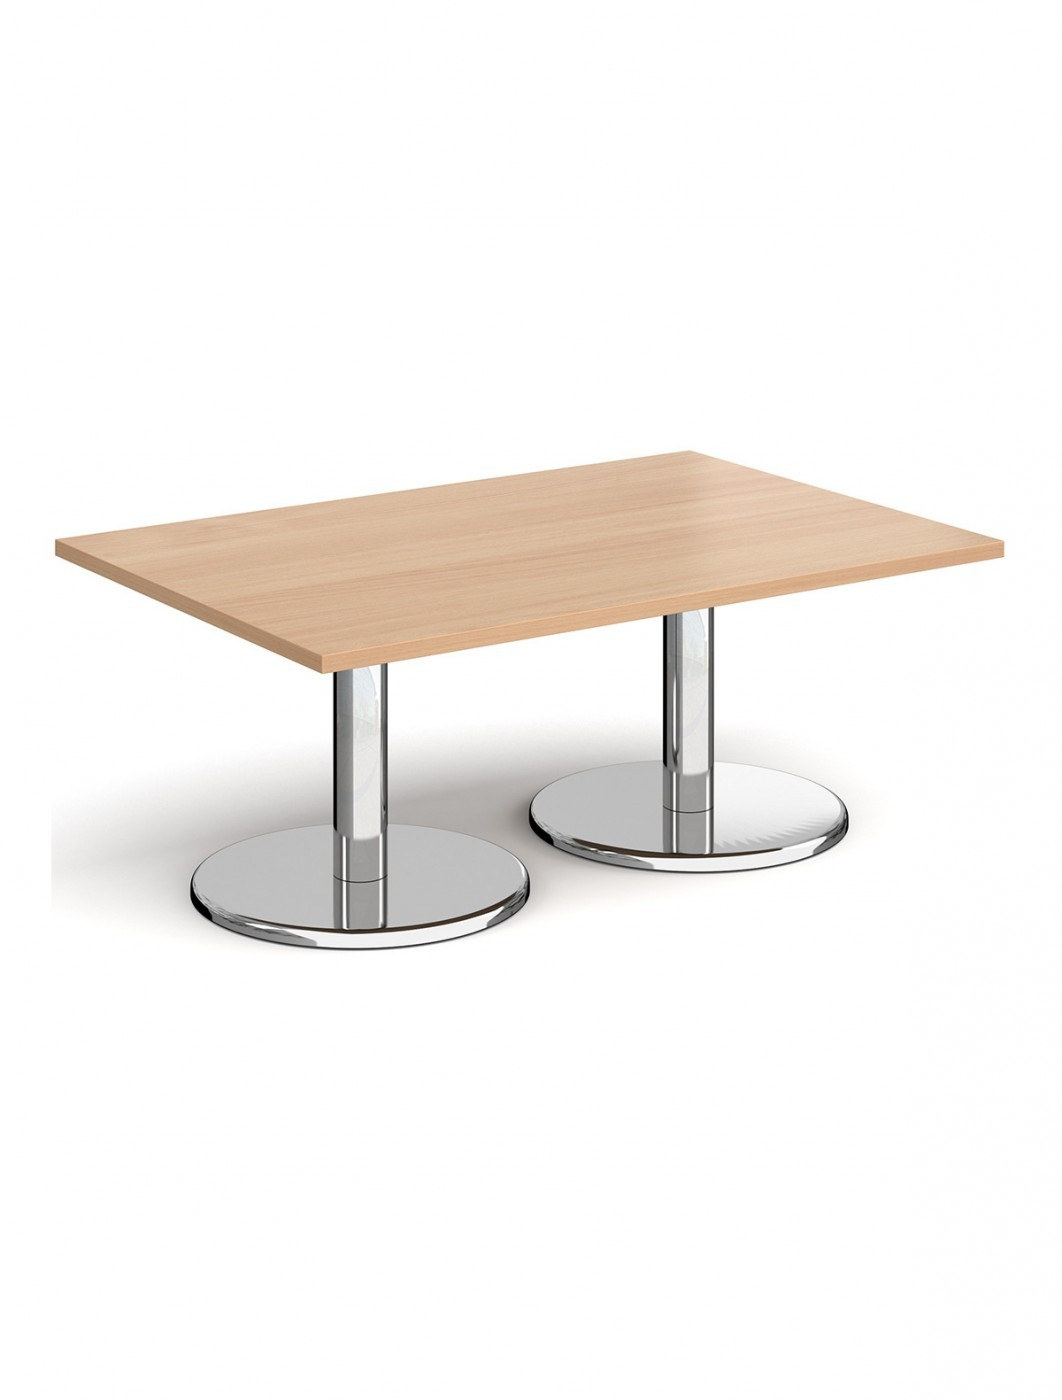 Rectangular Coffee Table Pisa 1200mm PCR1200 by Dams